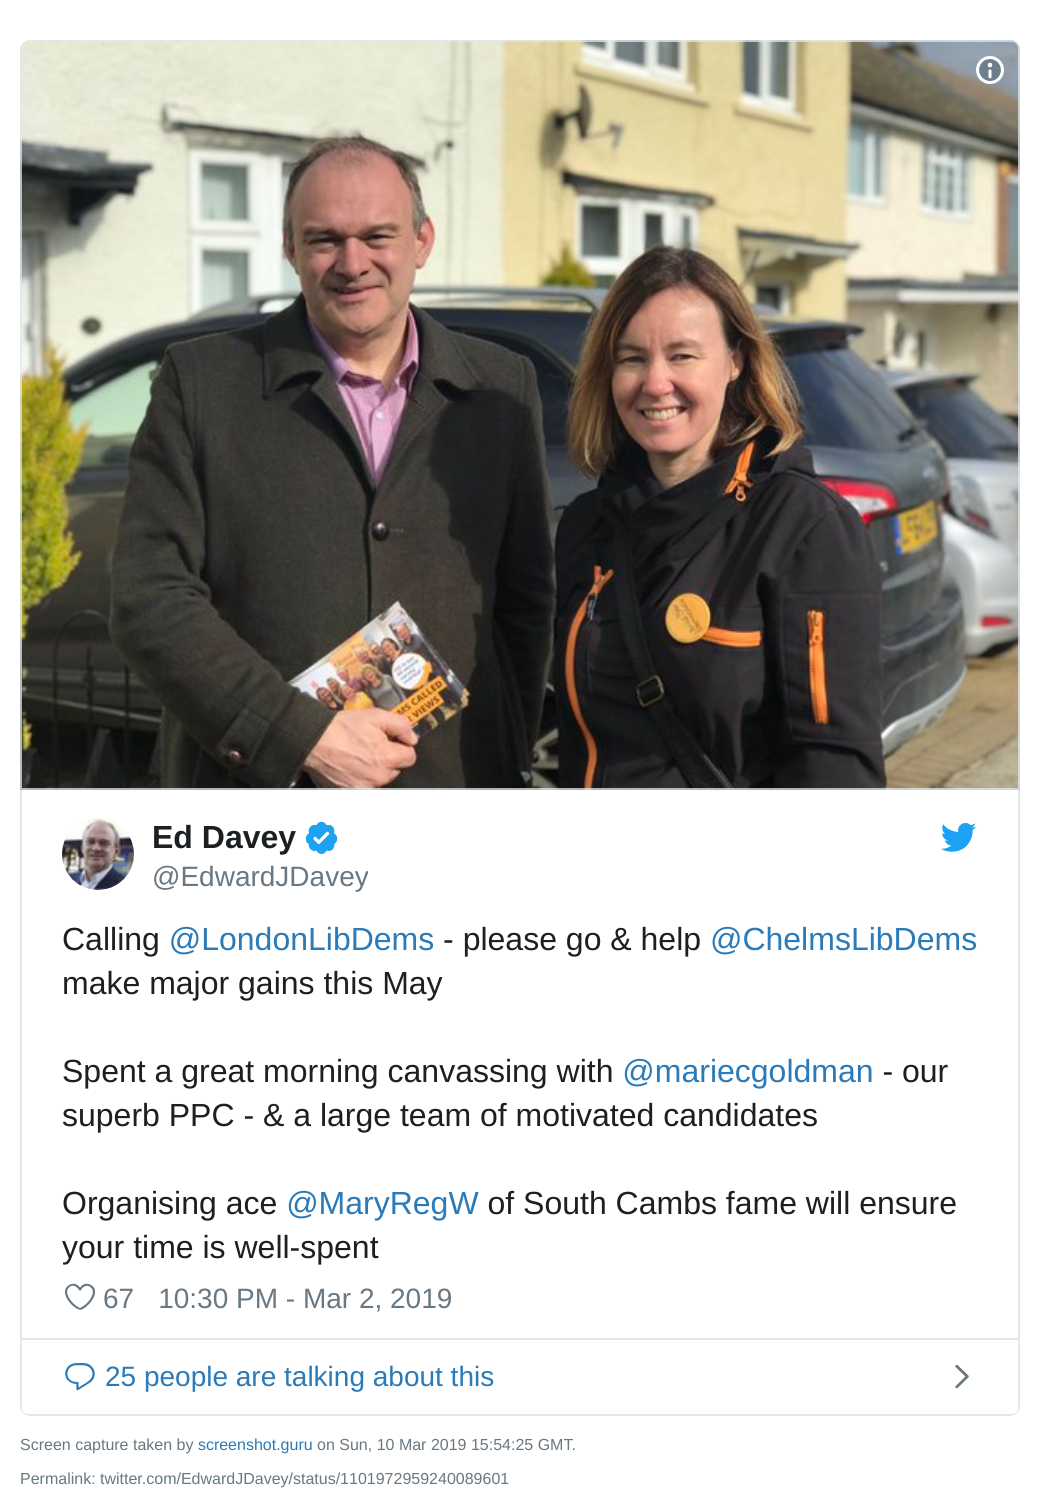 Ed Davey tweet urging Lib Dems from London to help in Chelmsford in the May elections